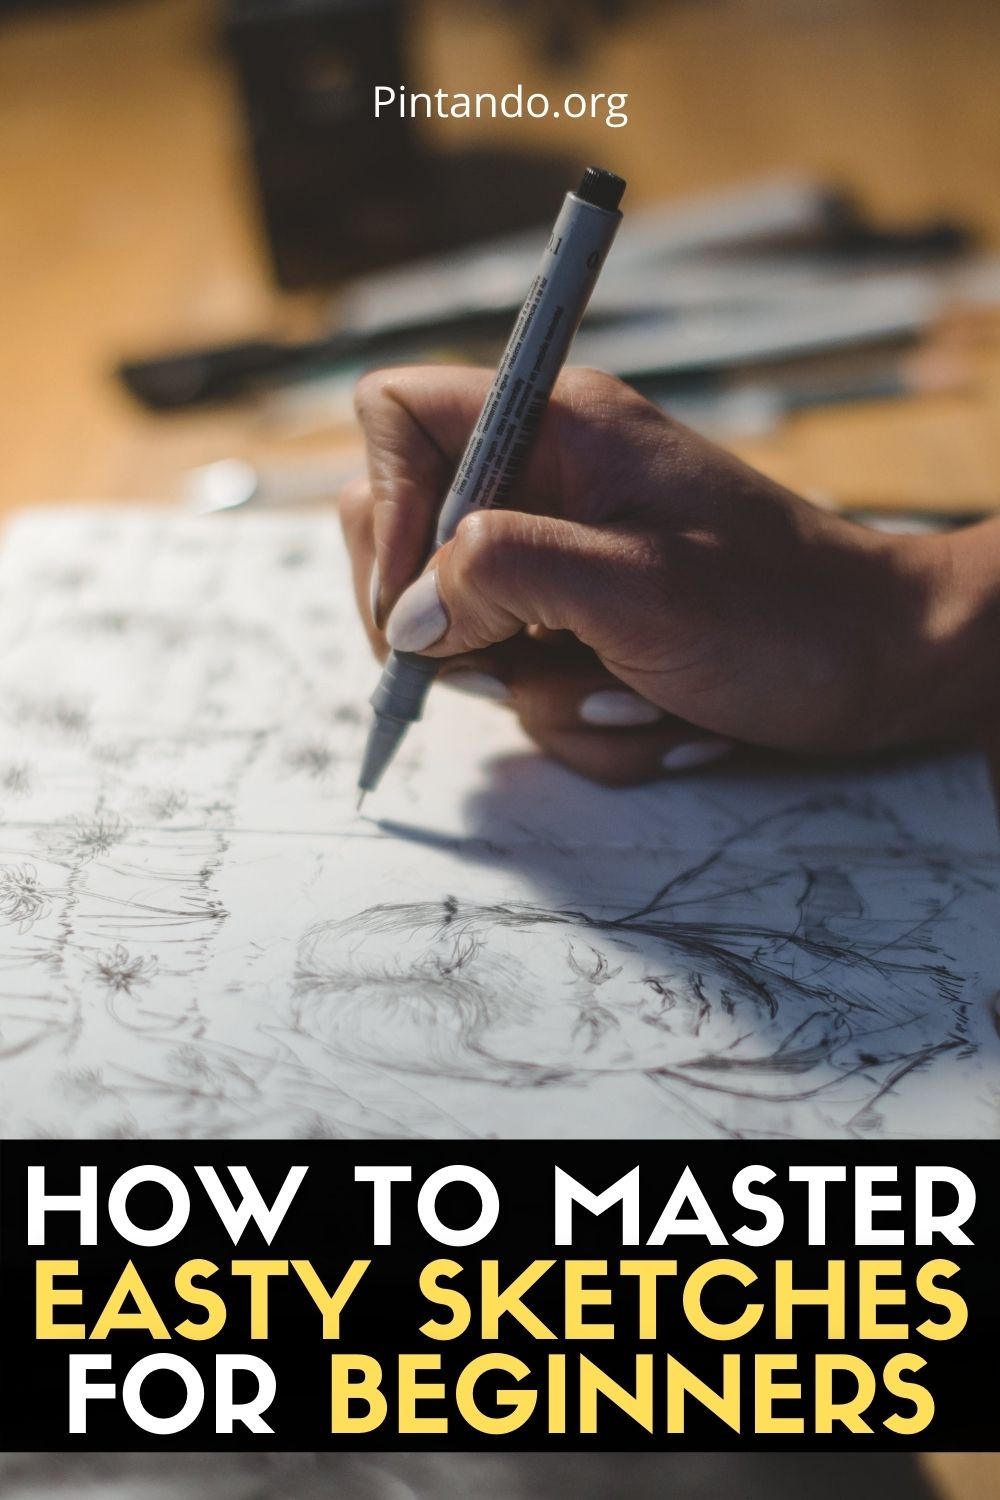 HOW TO MASTER EASTY SKETCHES FOR BEGINNERS